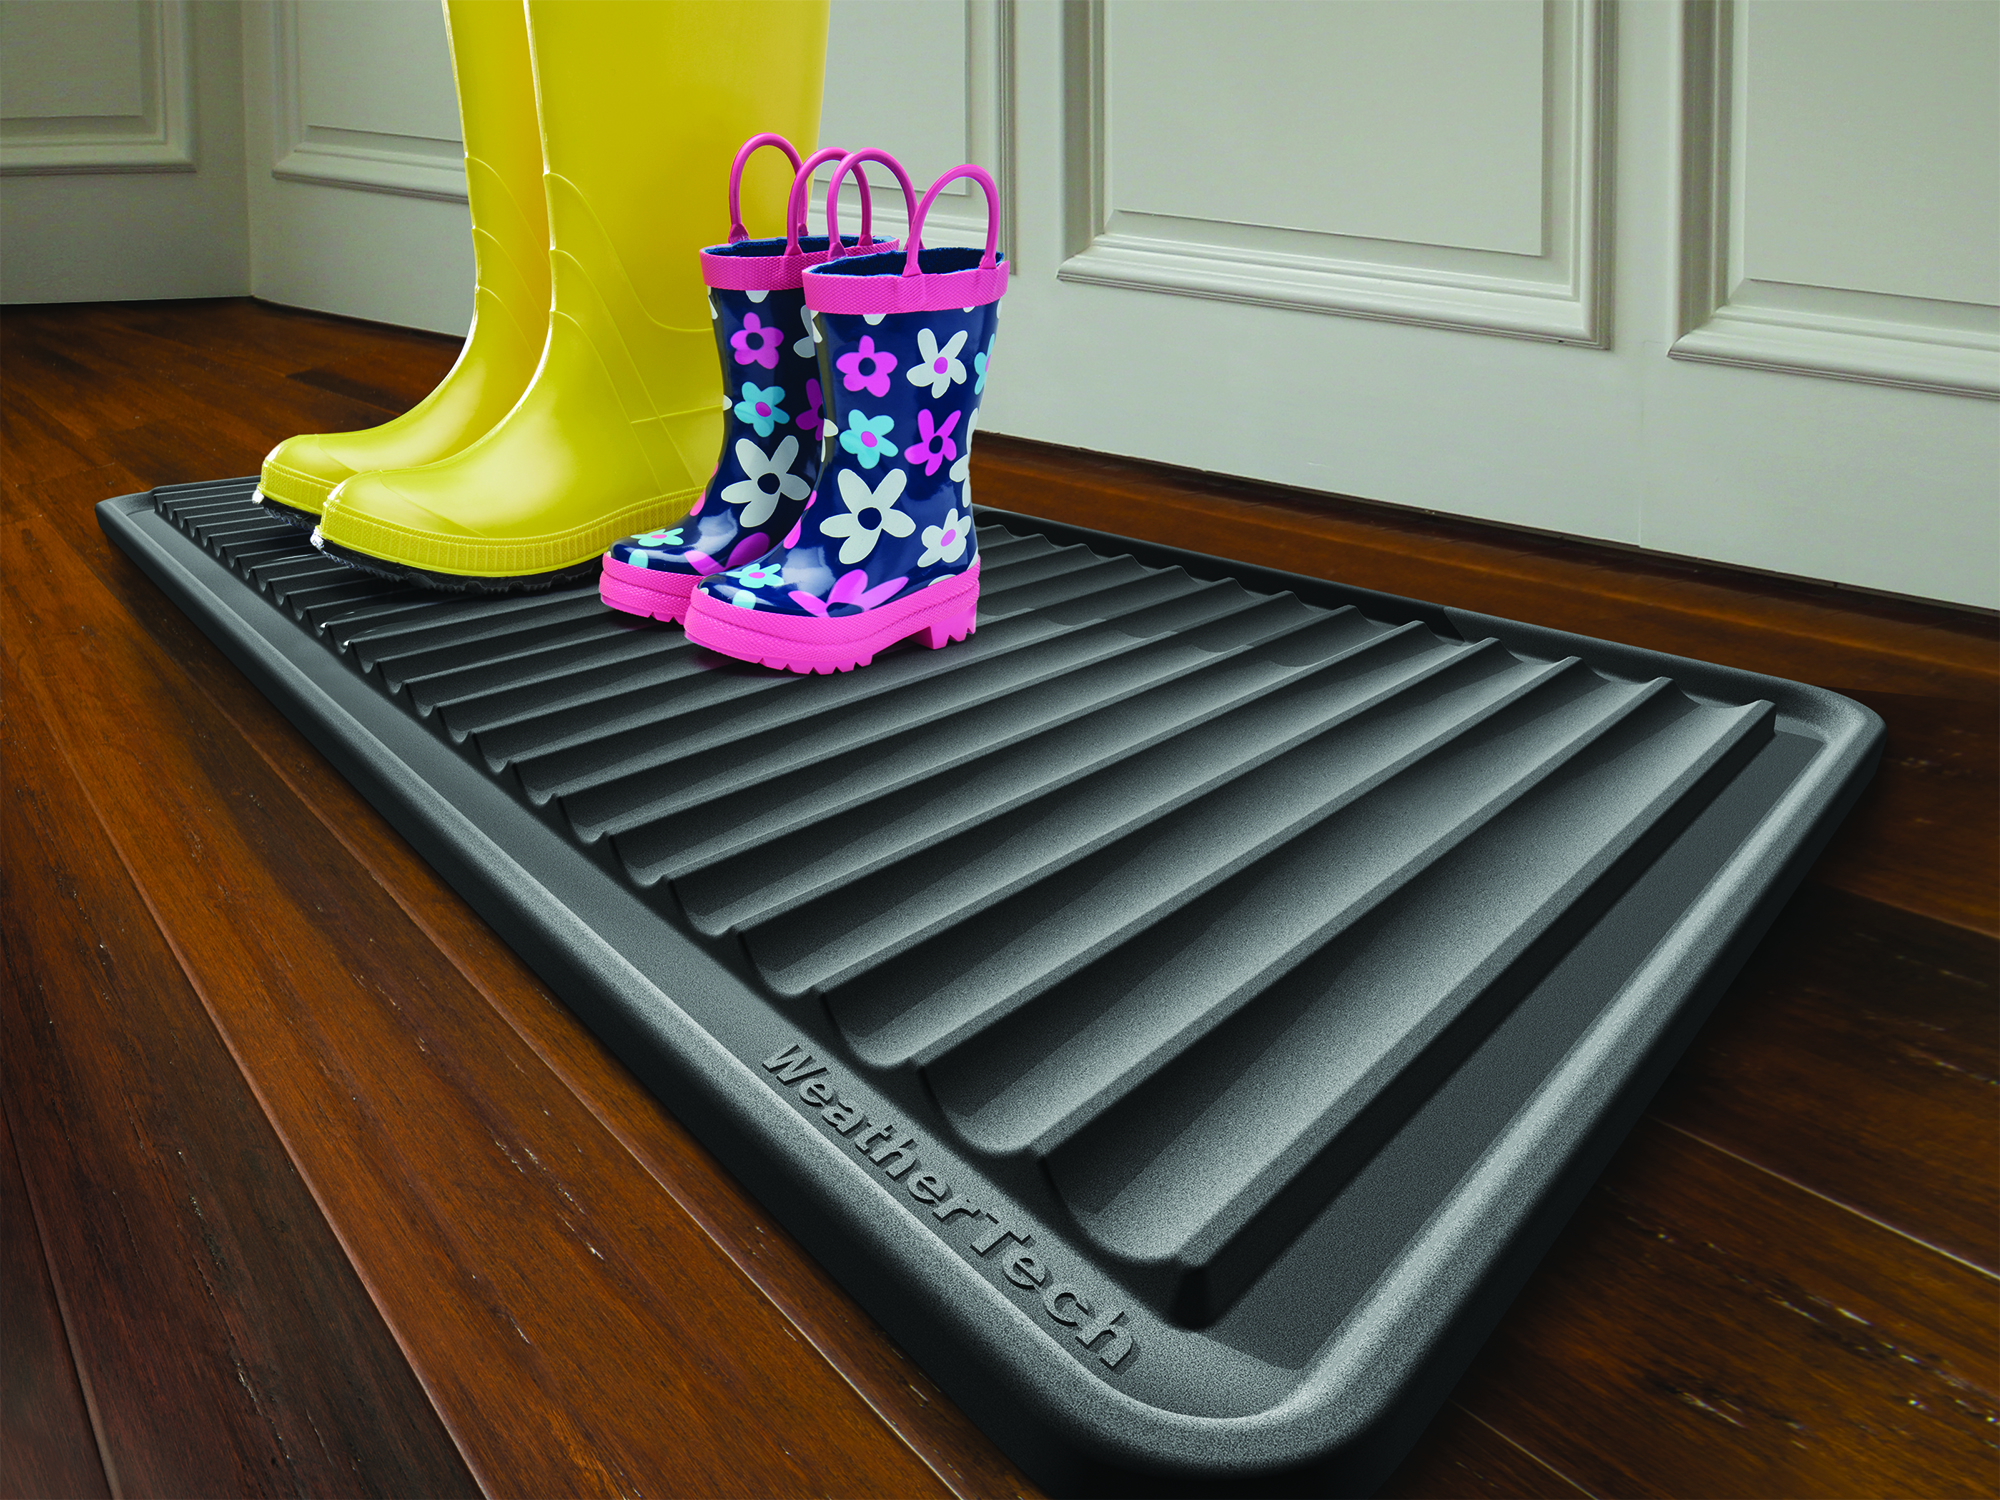 Weathertech door mats - Boottray A Mat For Dirty Boots And Shoes